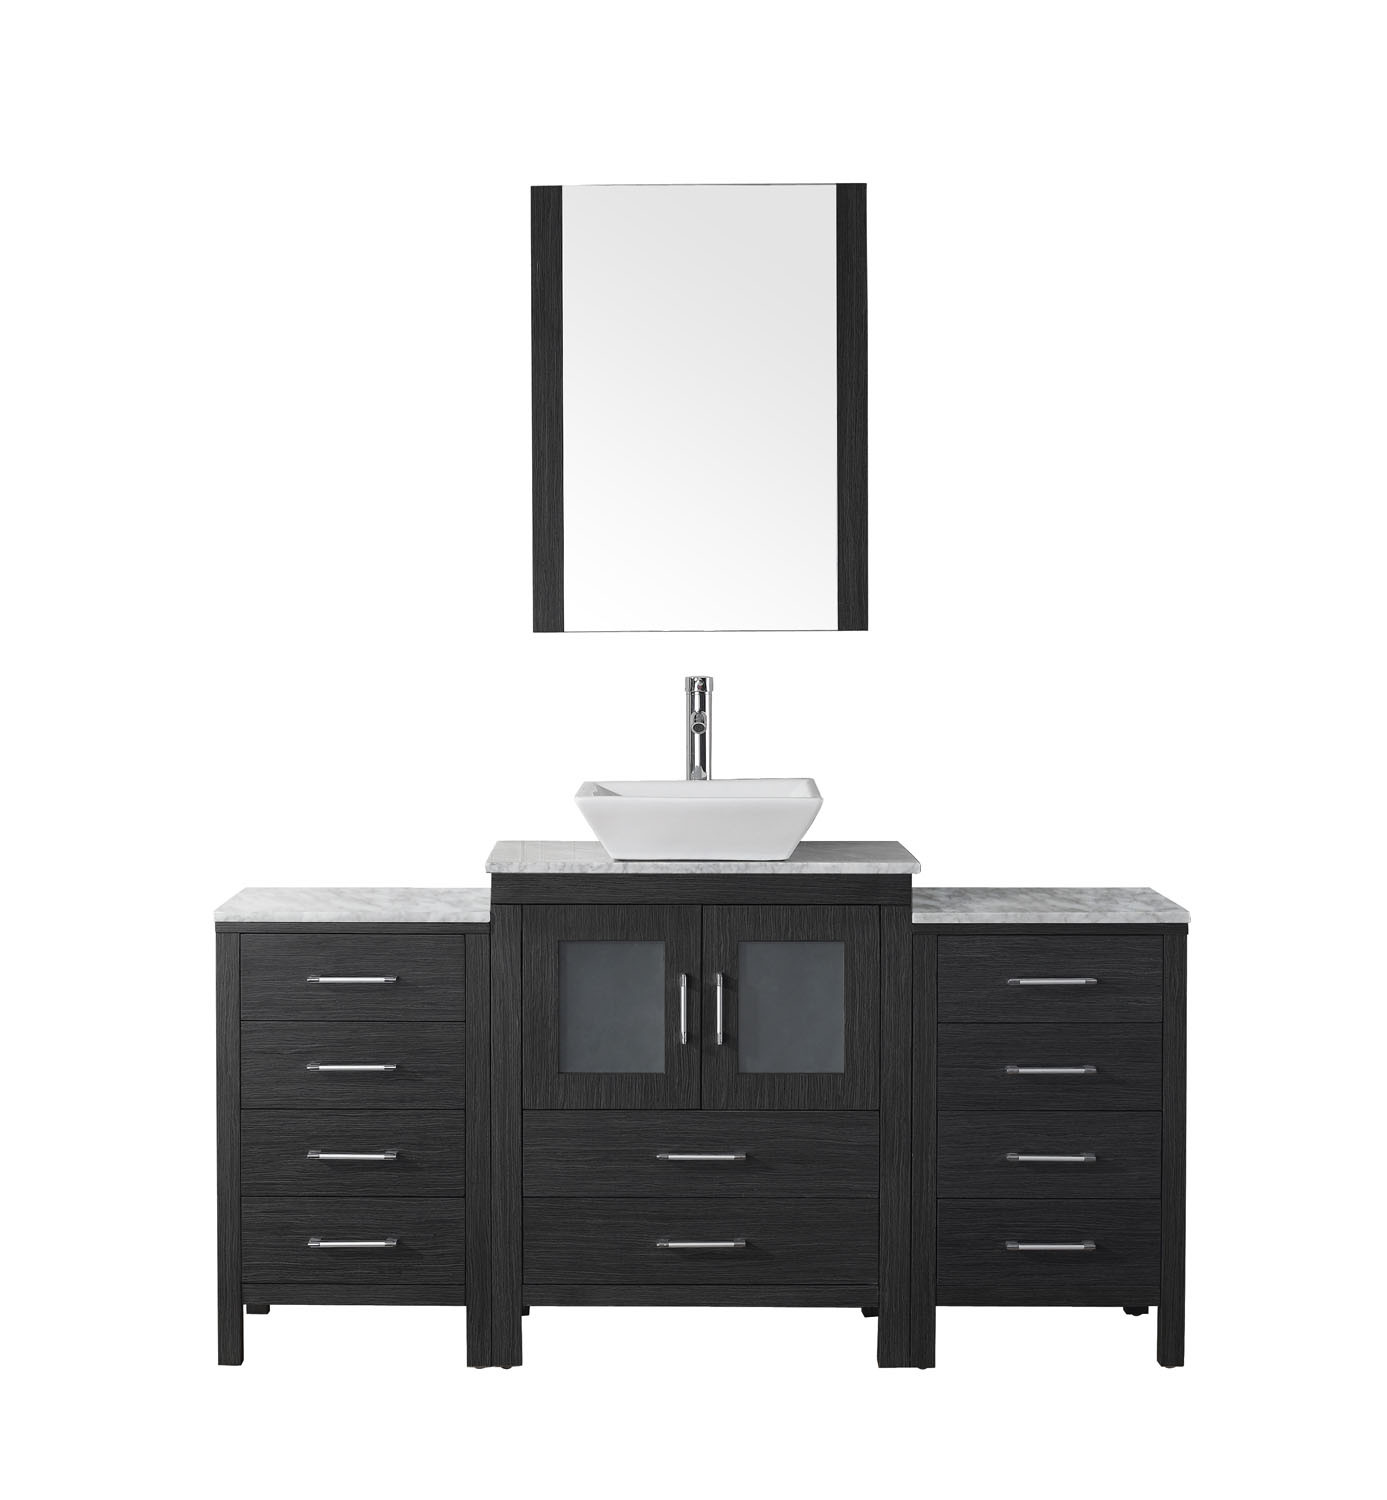 Virtu KS-70060-WM-ZG-001 Dior 60 Inch Single Bathroom Vanity Set In Zebra Grey